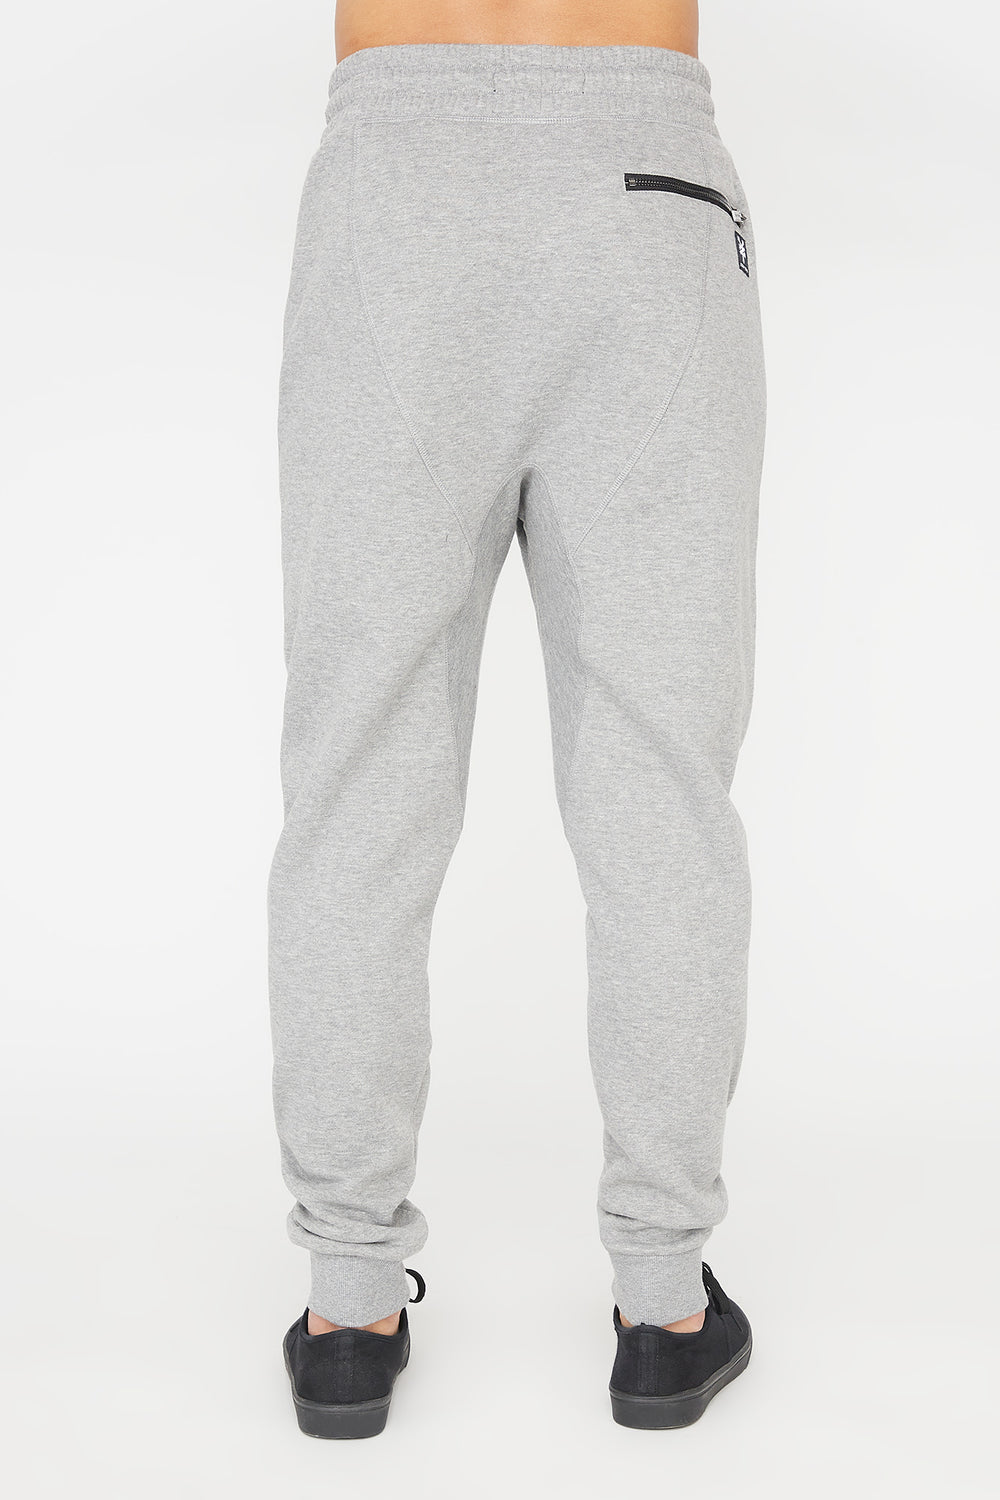 Zoo York Mens Zip Pocket Jogger Heather Grey